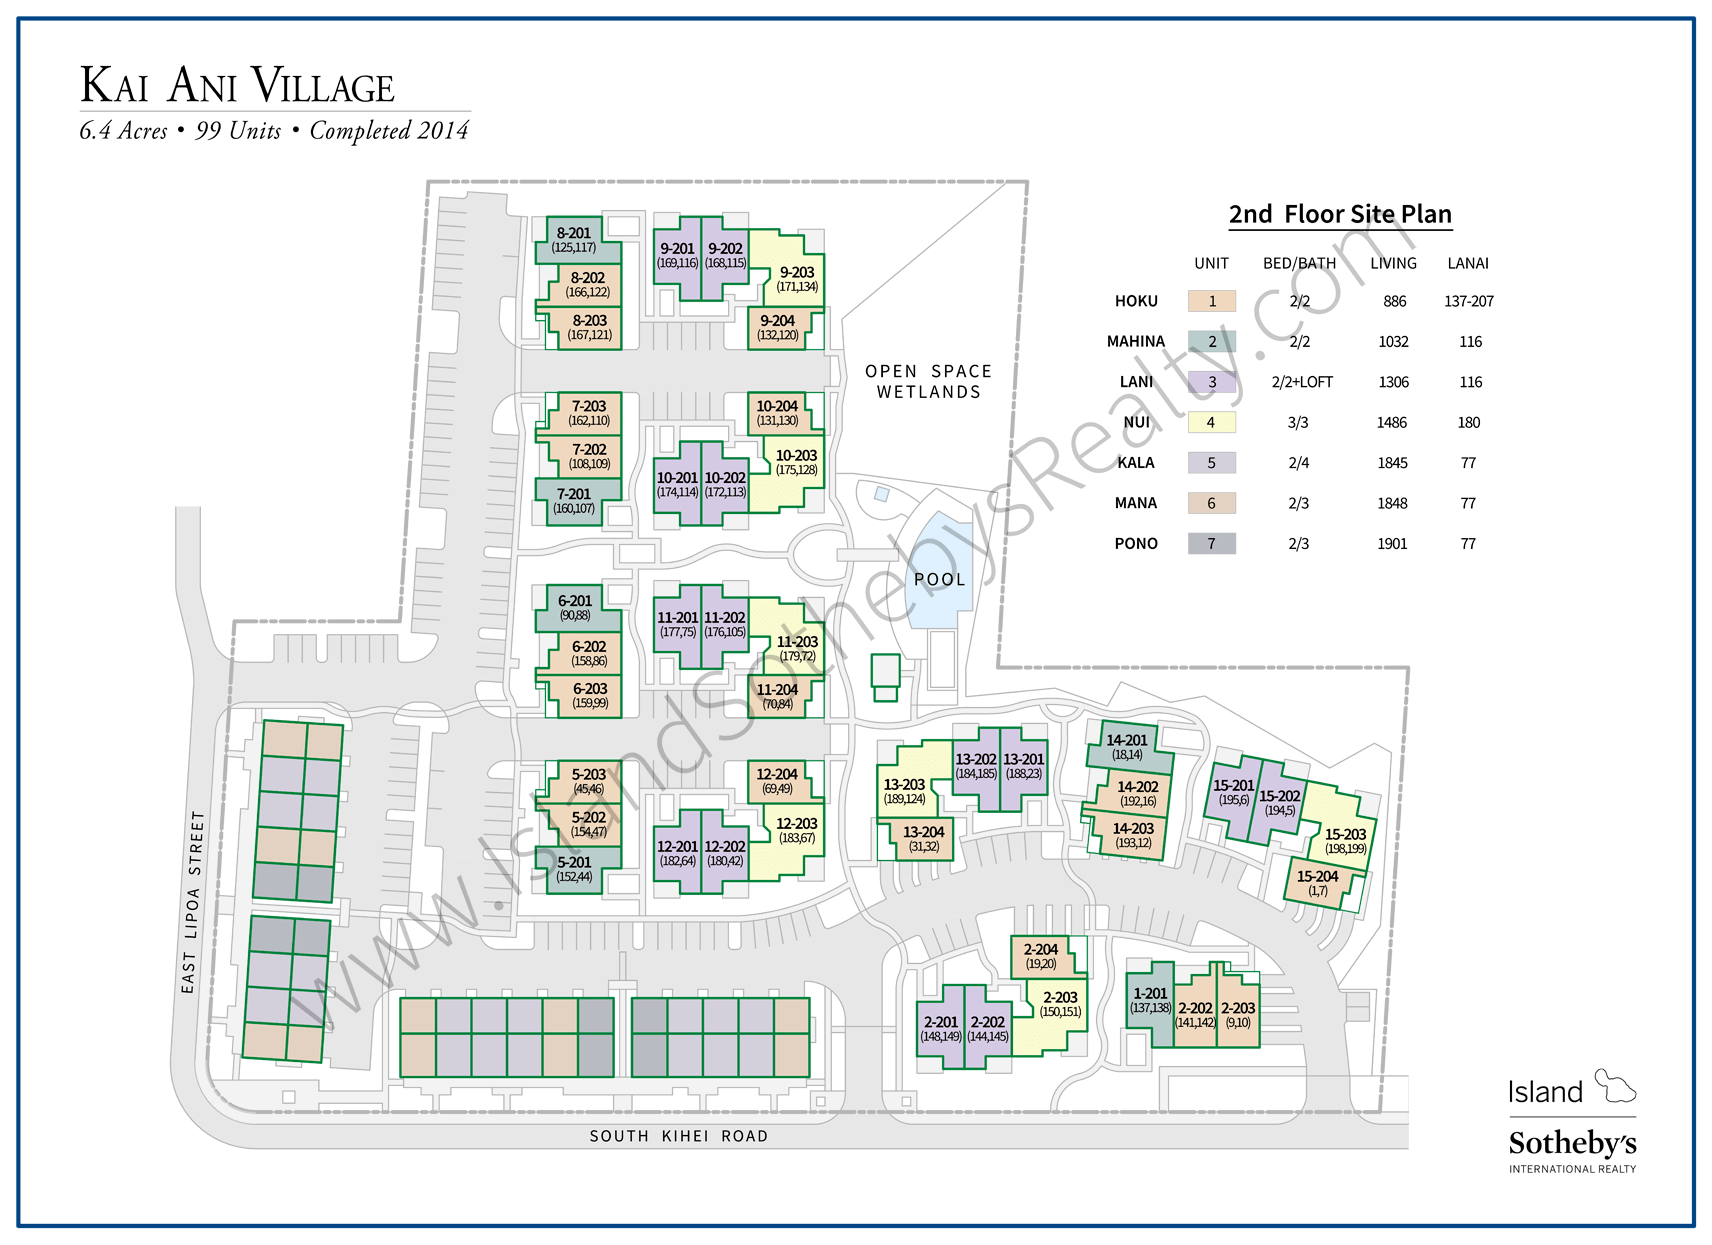 Map of Kai Ani Village 2nd Floor Maui